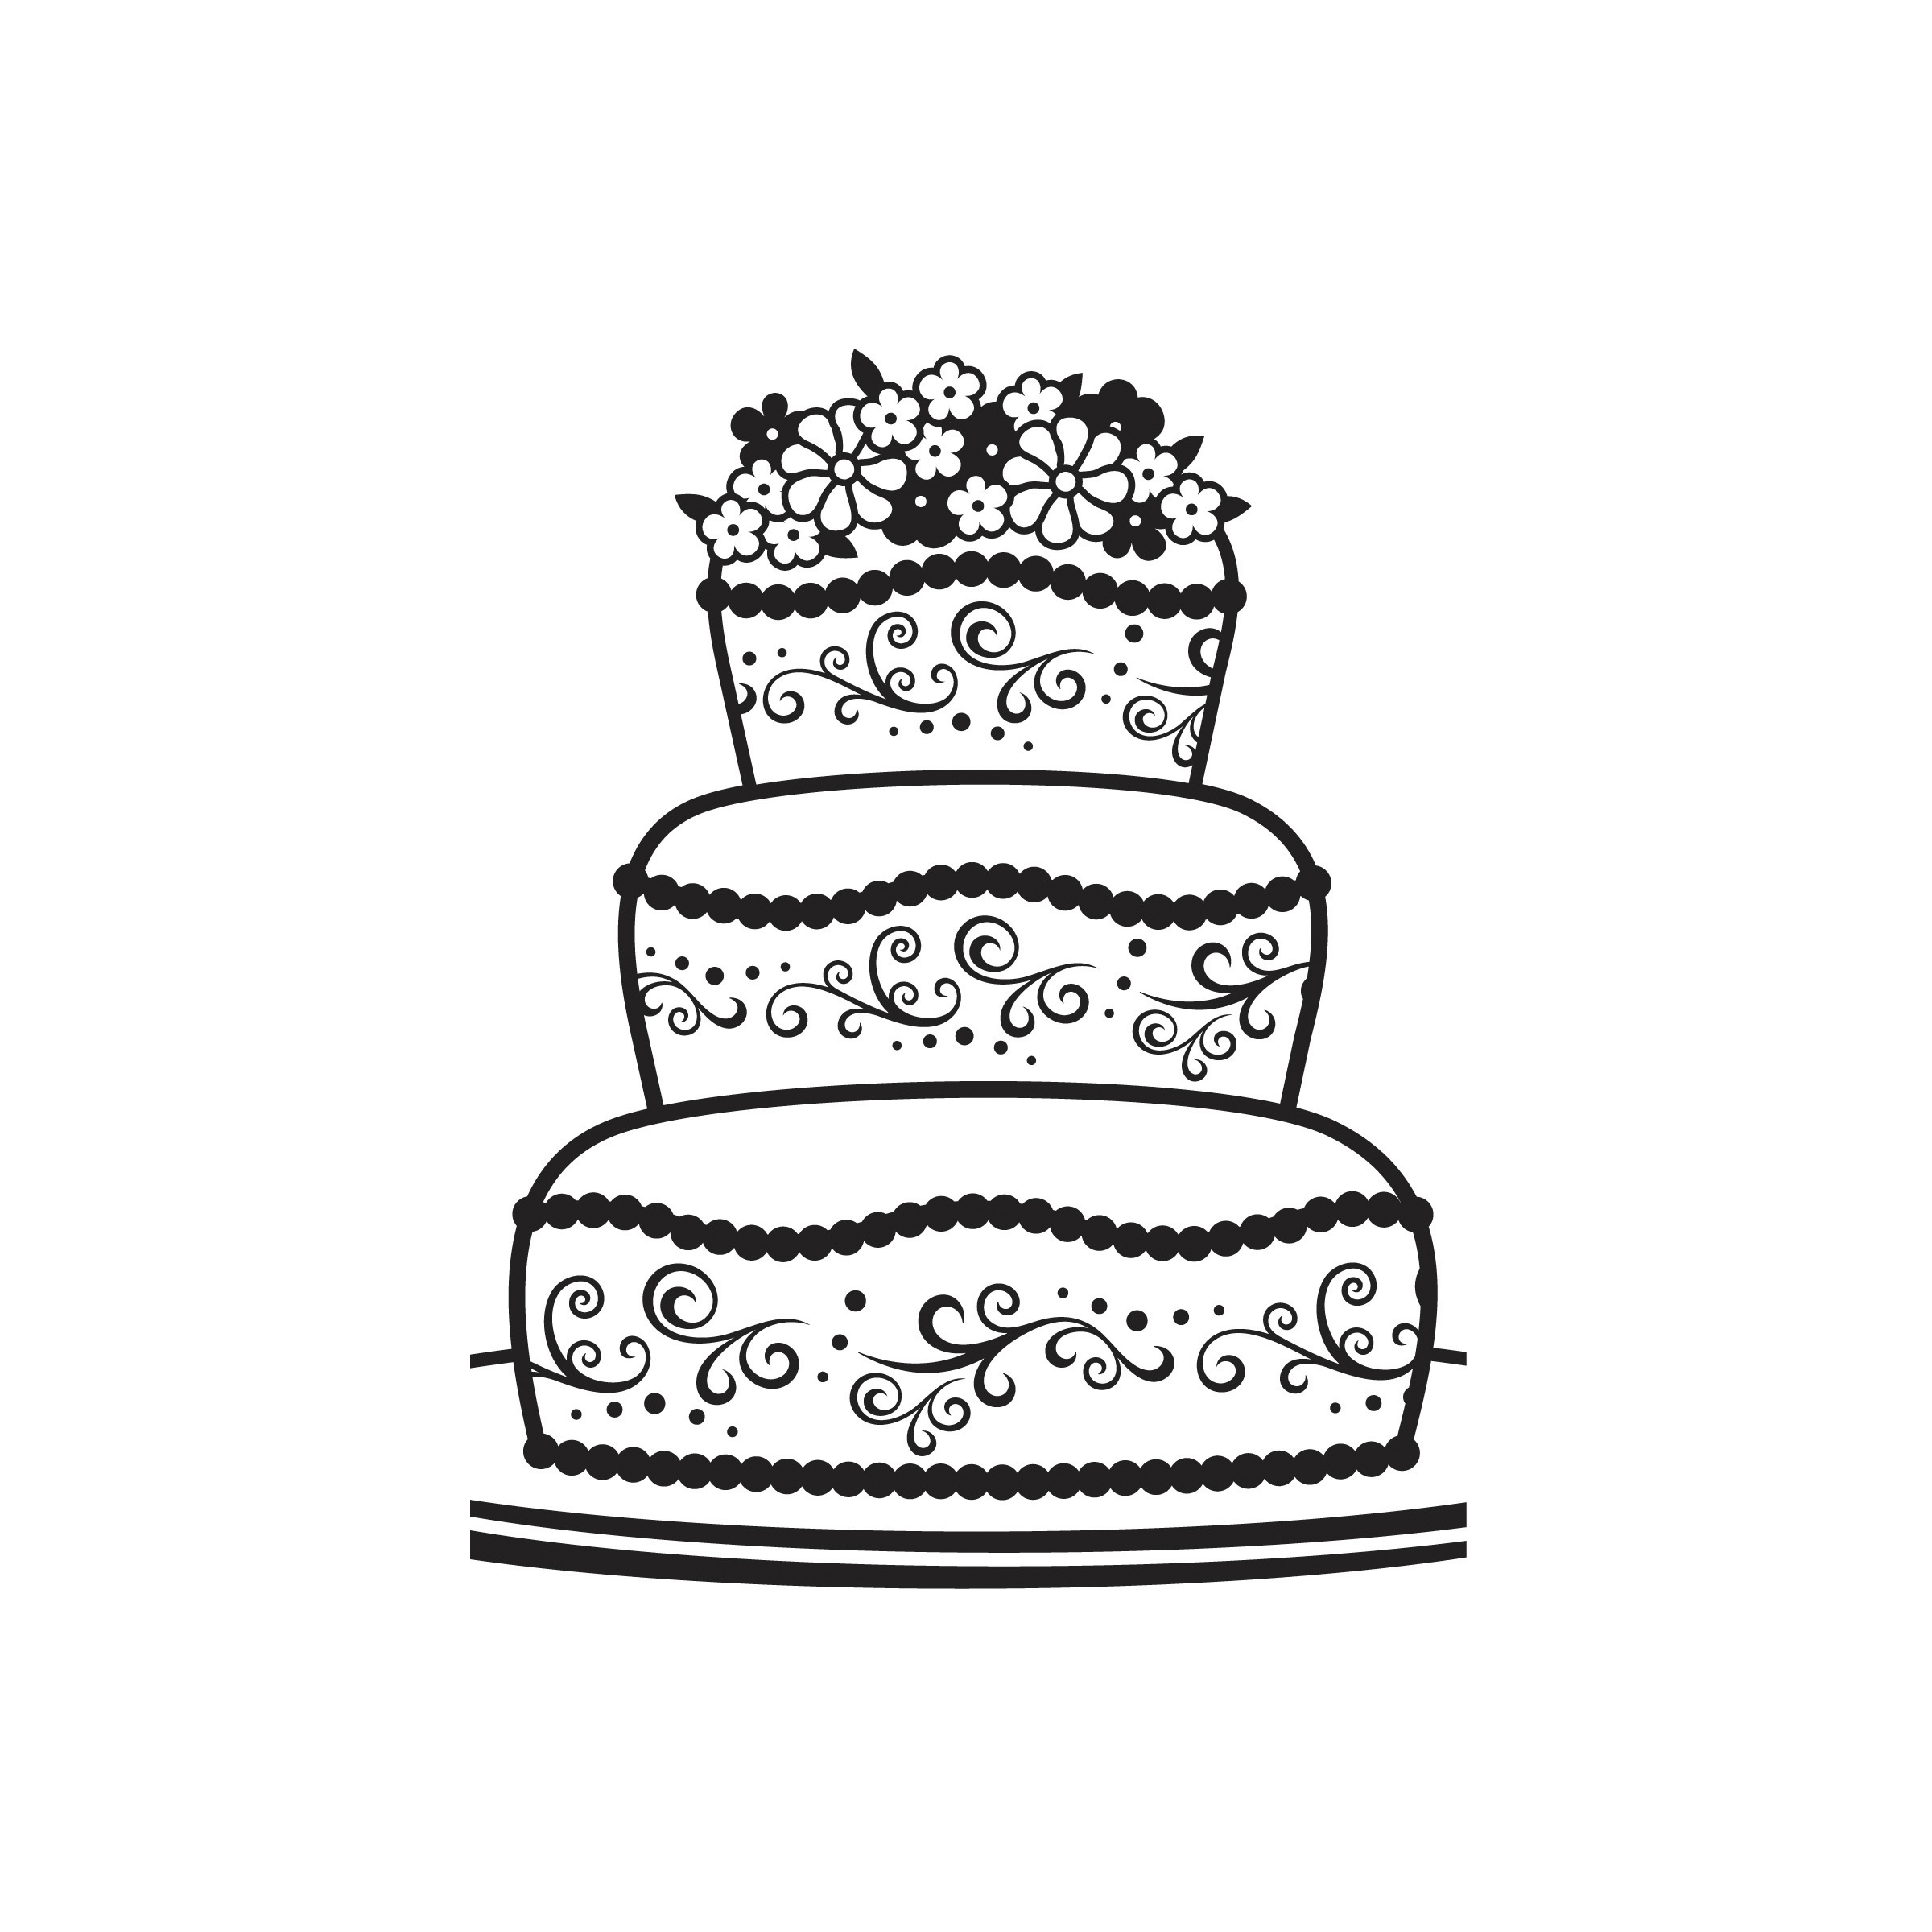 Darice® Embossing Folder - Fancy Cake, 4-1/2 x 5-3/4 inches